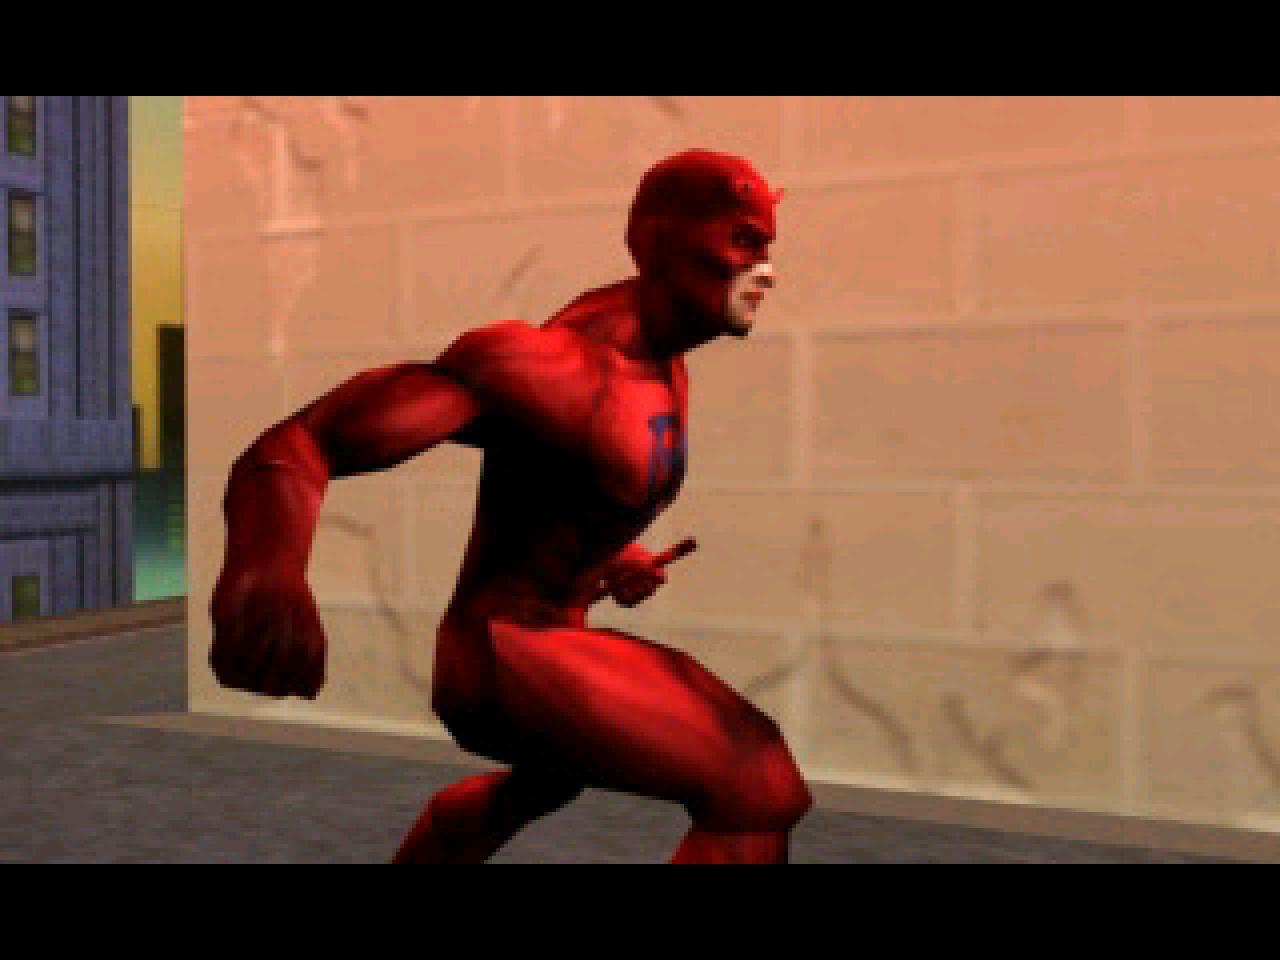 https://s3.eu-west-3.amazonaws.com/games.anthony-dessalles.com/Spider-Man 2 Enter Electro PS1 2020 - Screenshots/Spider-Man 2 Enter Electro-201125-185001.png